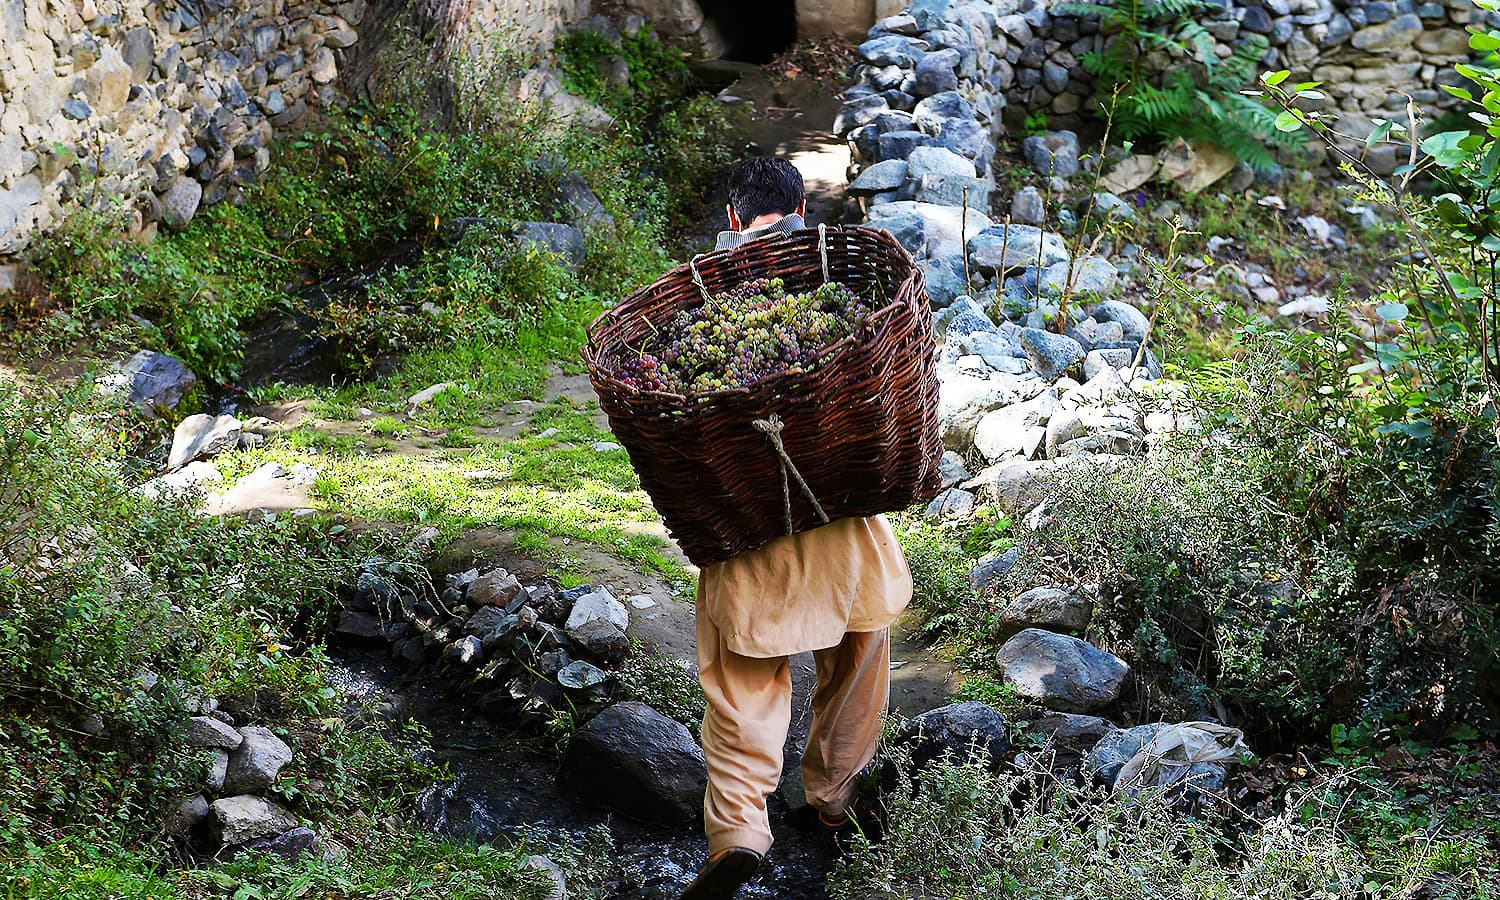 A local carries a basket of freshly picked grapes for brewing wine from a garden. ─ AFP